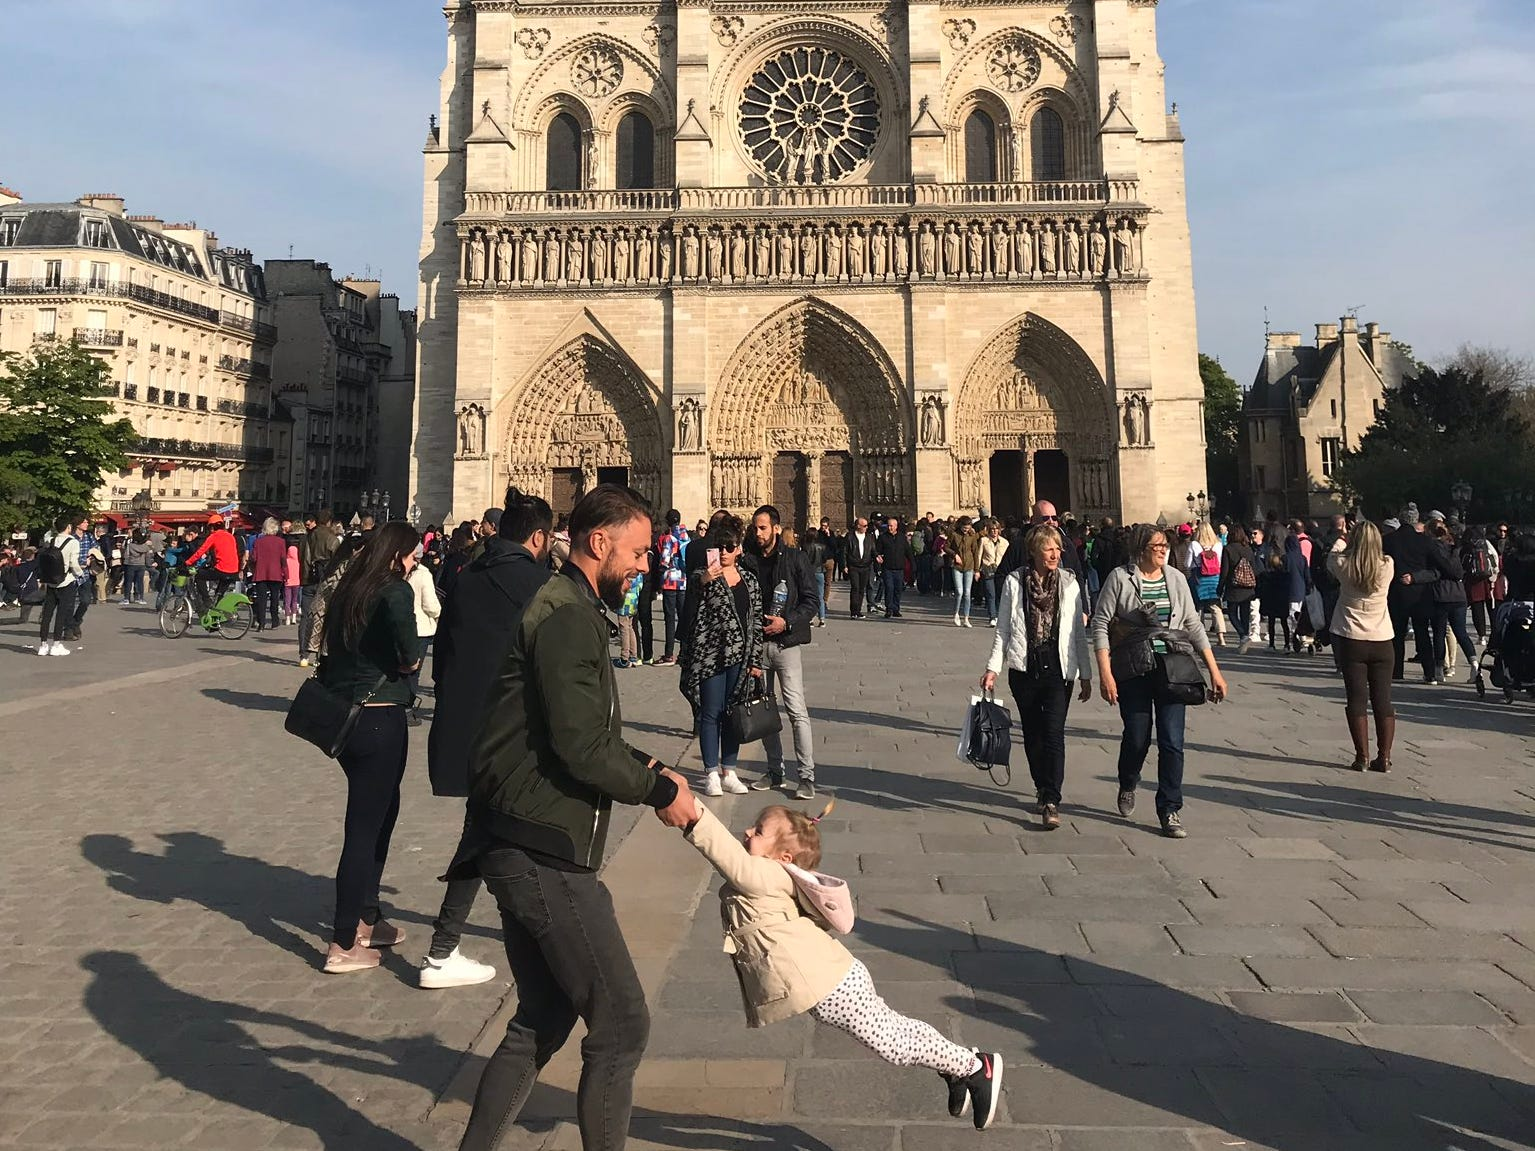 Do you know who's in this photo taken hour before Notre Dame Cathedral fire?